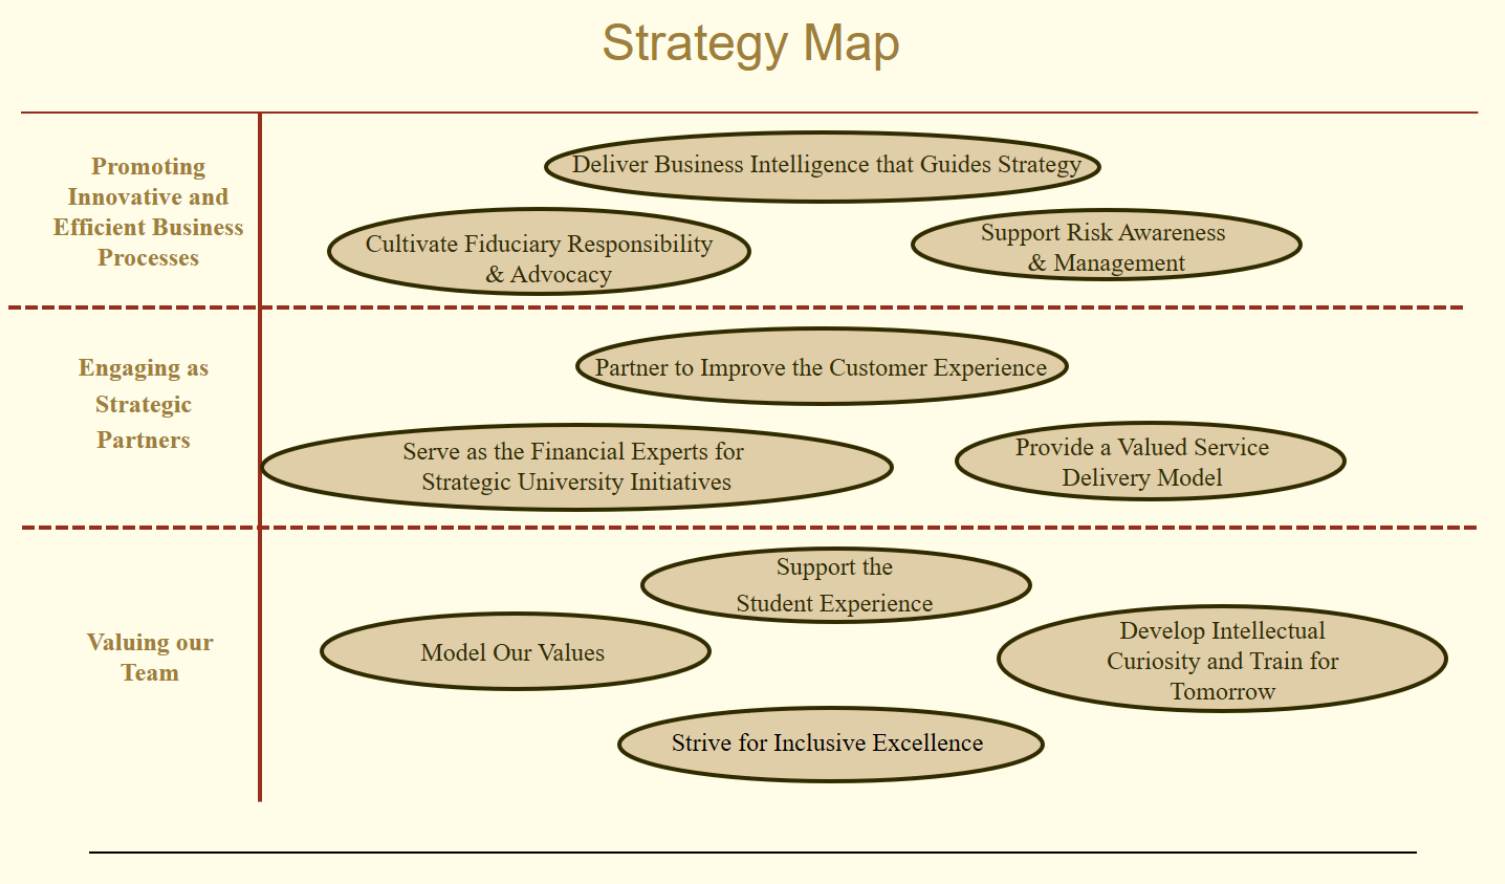 Financial Services Strategy Map